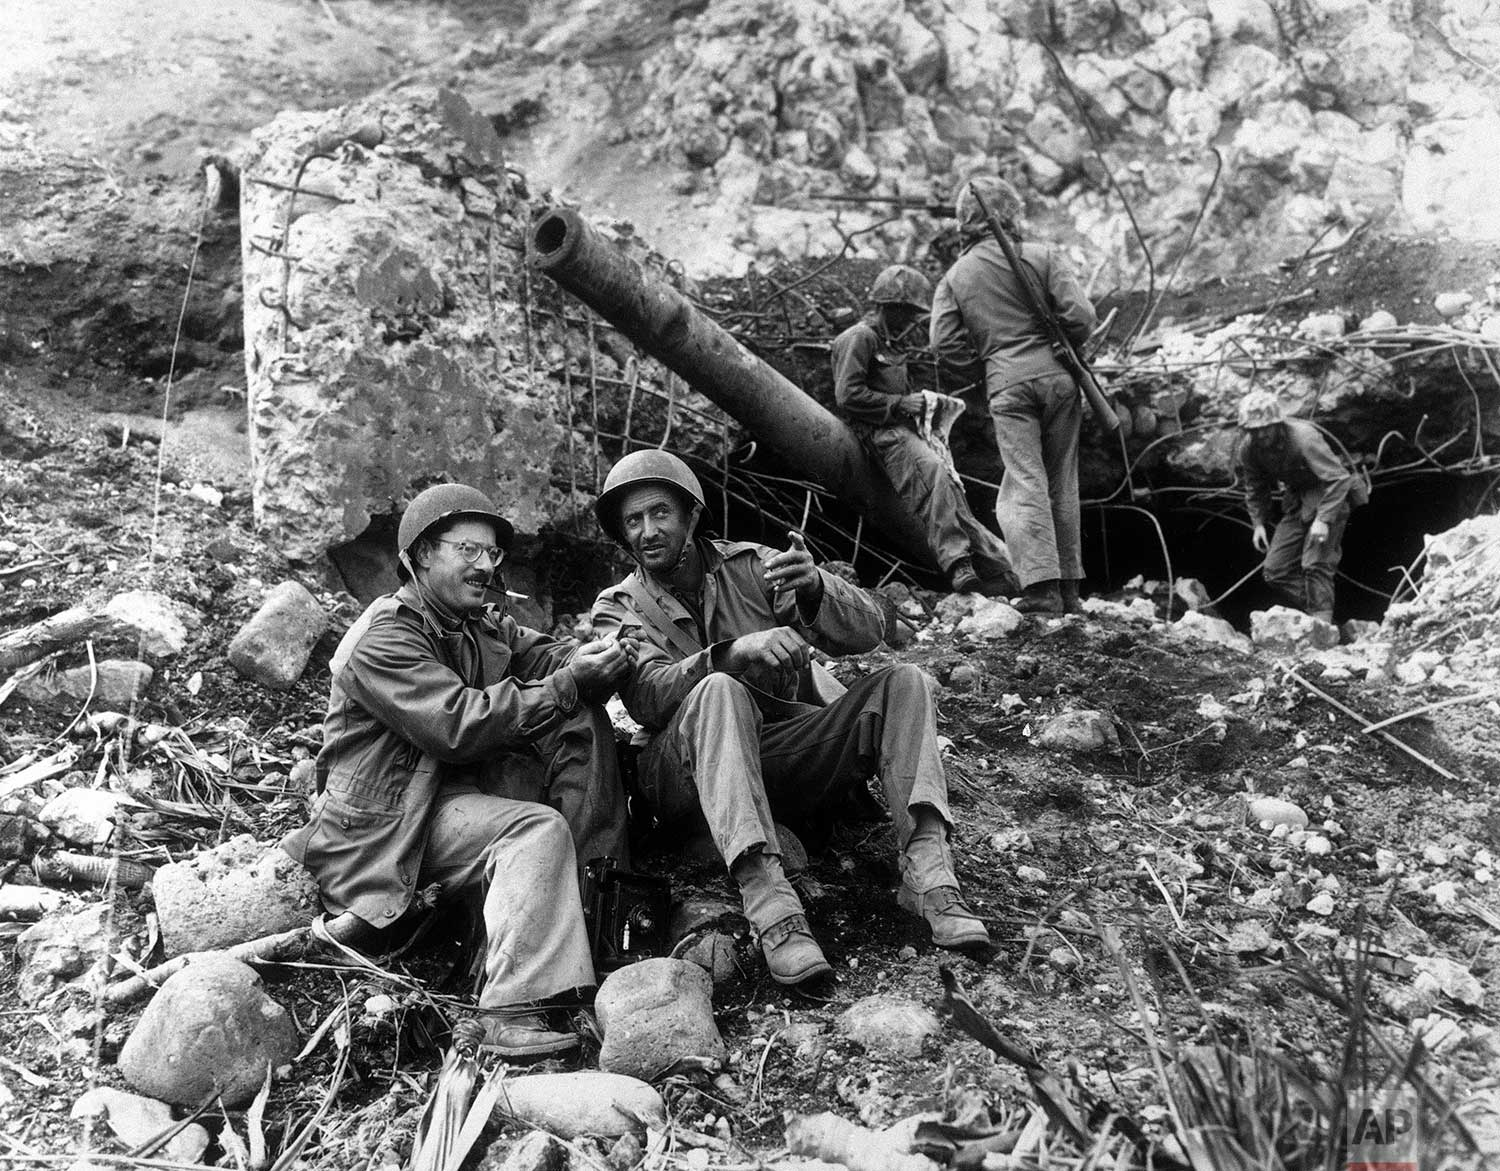 Associated Press photographer with the wartime pool, Joe Rosenthal, takes time out to rest with Bob Campbell, a Marine from San Francisco, March 2, 1945, in front of a large Japanese gun knocked out by Marines at the base of Mount Suribachi. Rosenthal scaled the mountain to make the picture of the U.S. flag being raised there. (AP Photo)